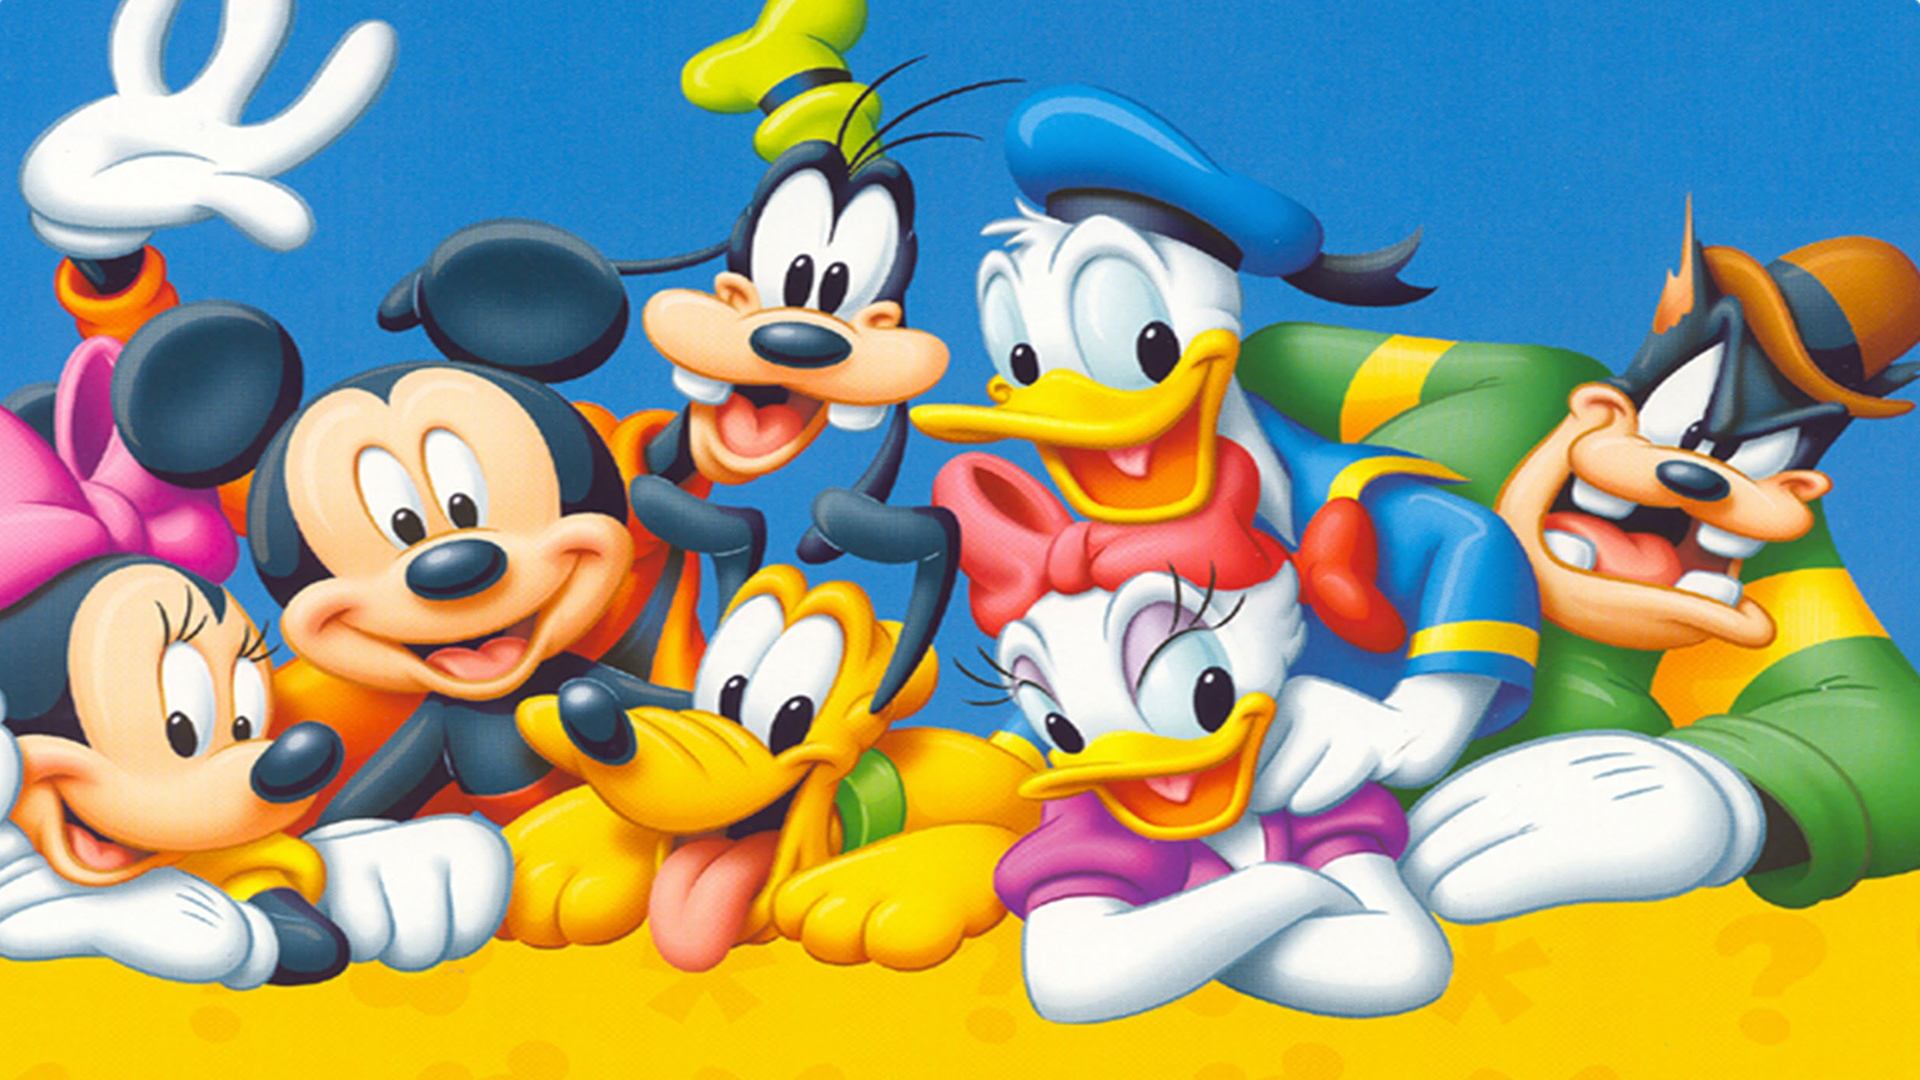 Free Donald Duck Pictures Online